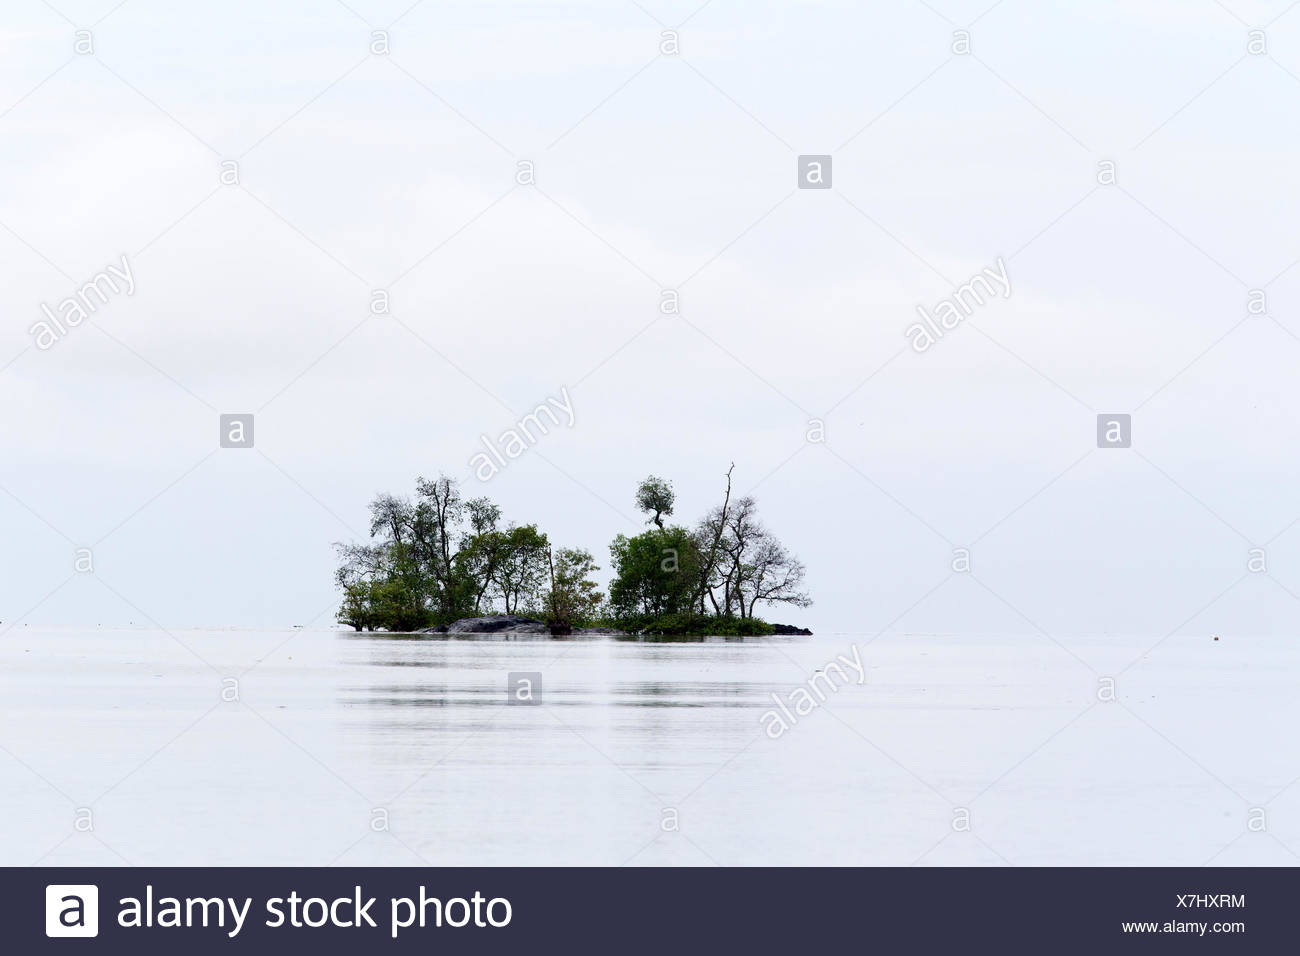 Mouth of the river in Salak South China Sea - Sarawak Borneo - Stock Image